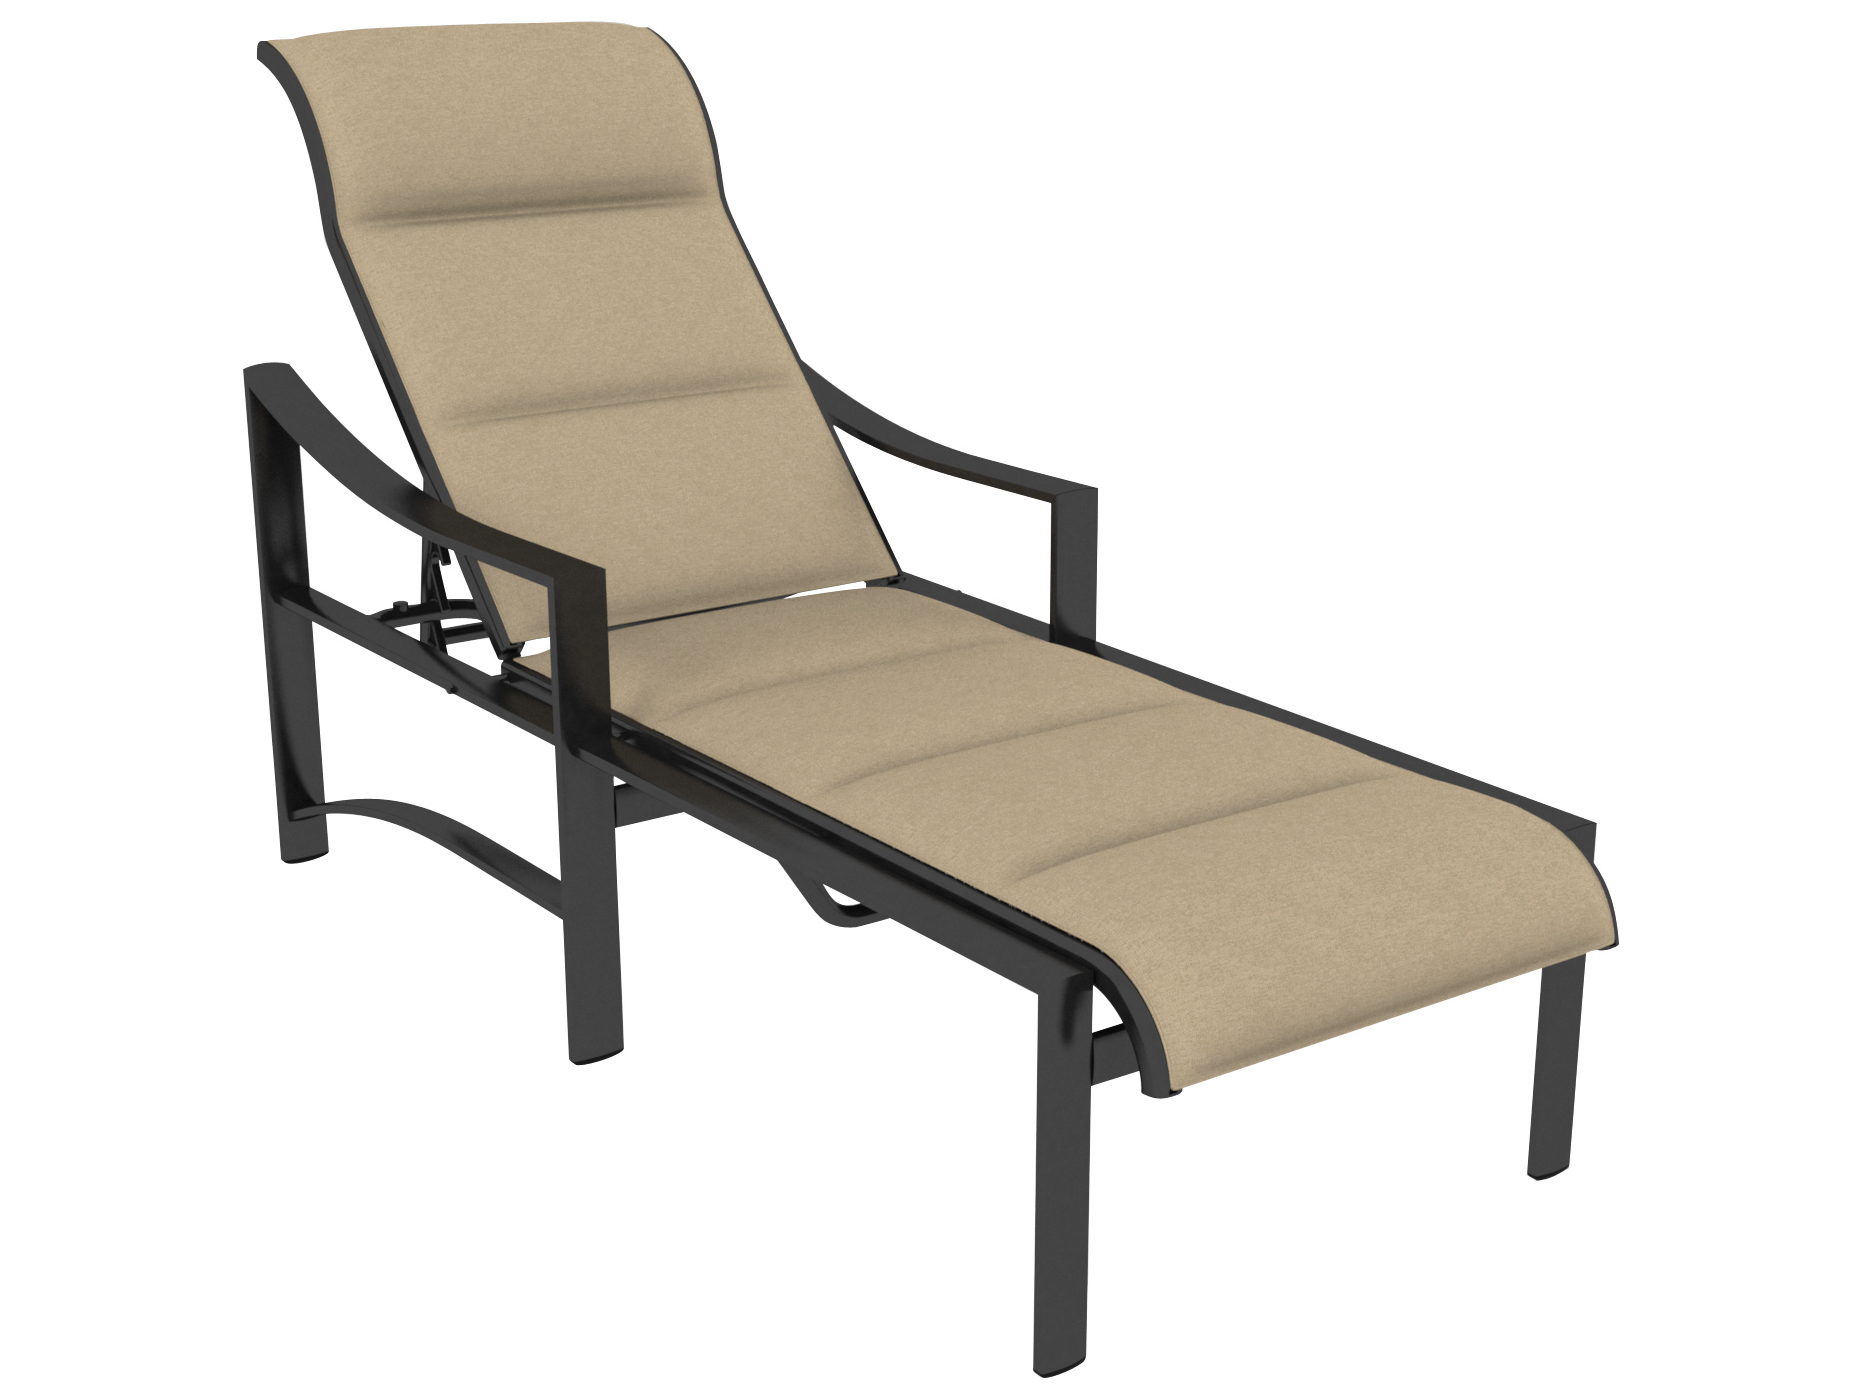 Tropitone kenzo padded sling aluminum chaise lounge 381532ps for Aluminium chaise lounge